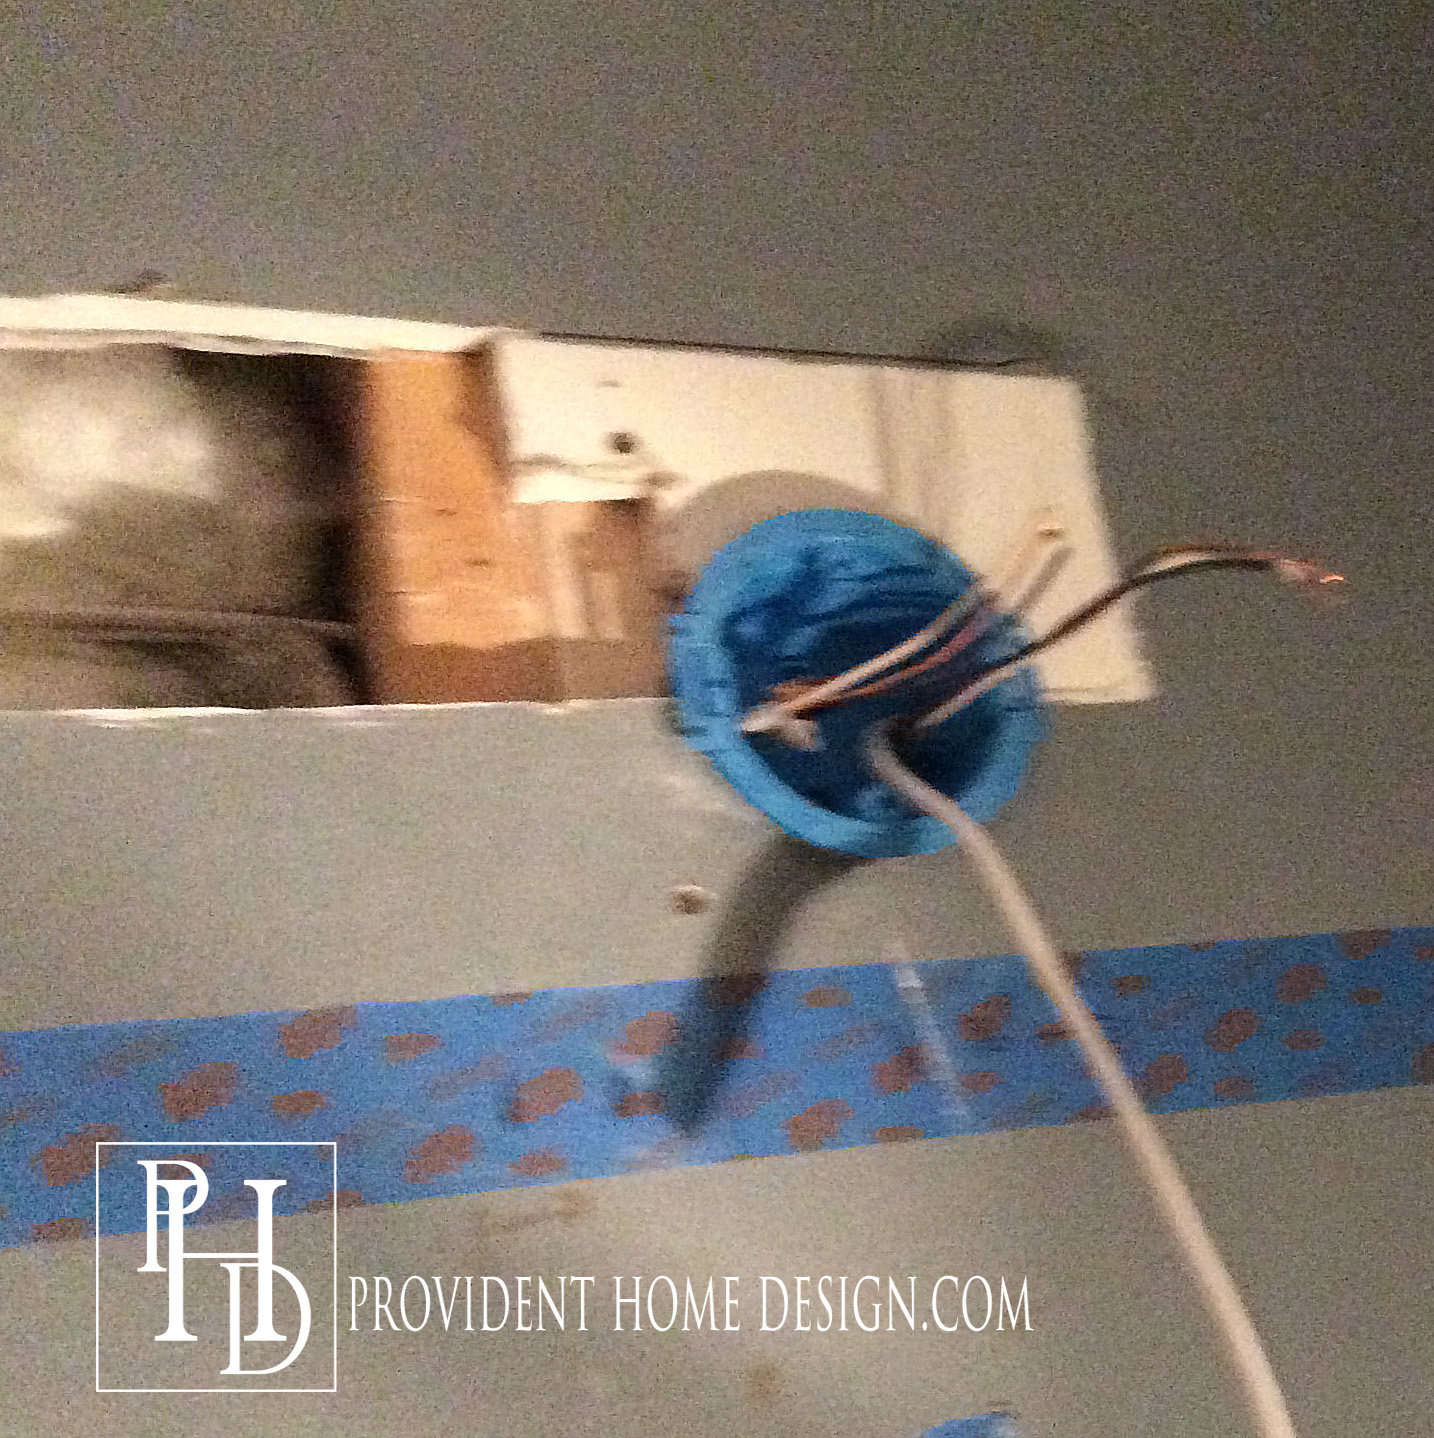 How To Replace A Hollywood Light With 2 Vanity Lights Electrical Wiring Behind Walls Wire One Two